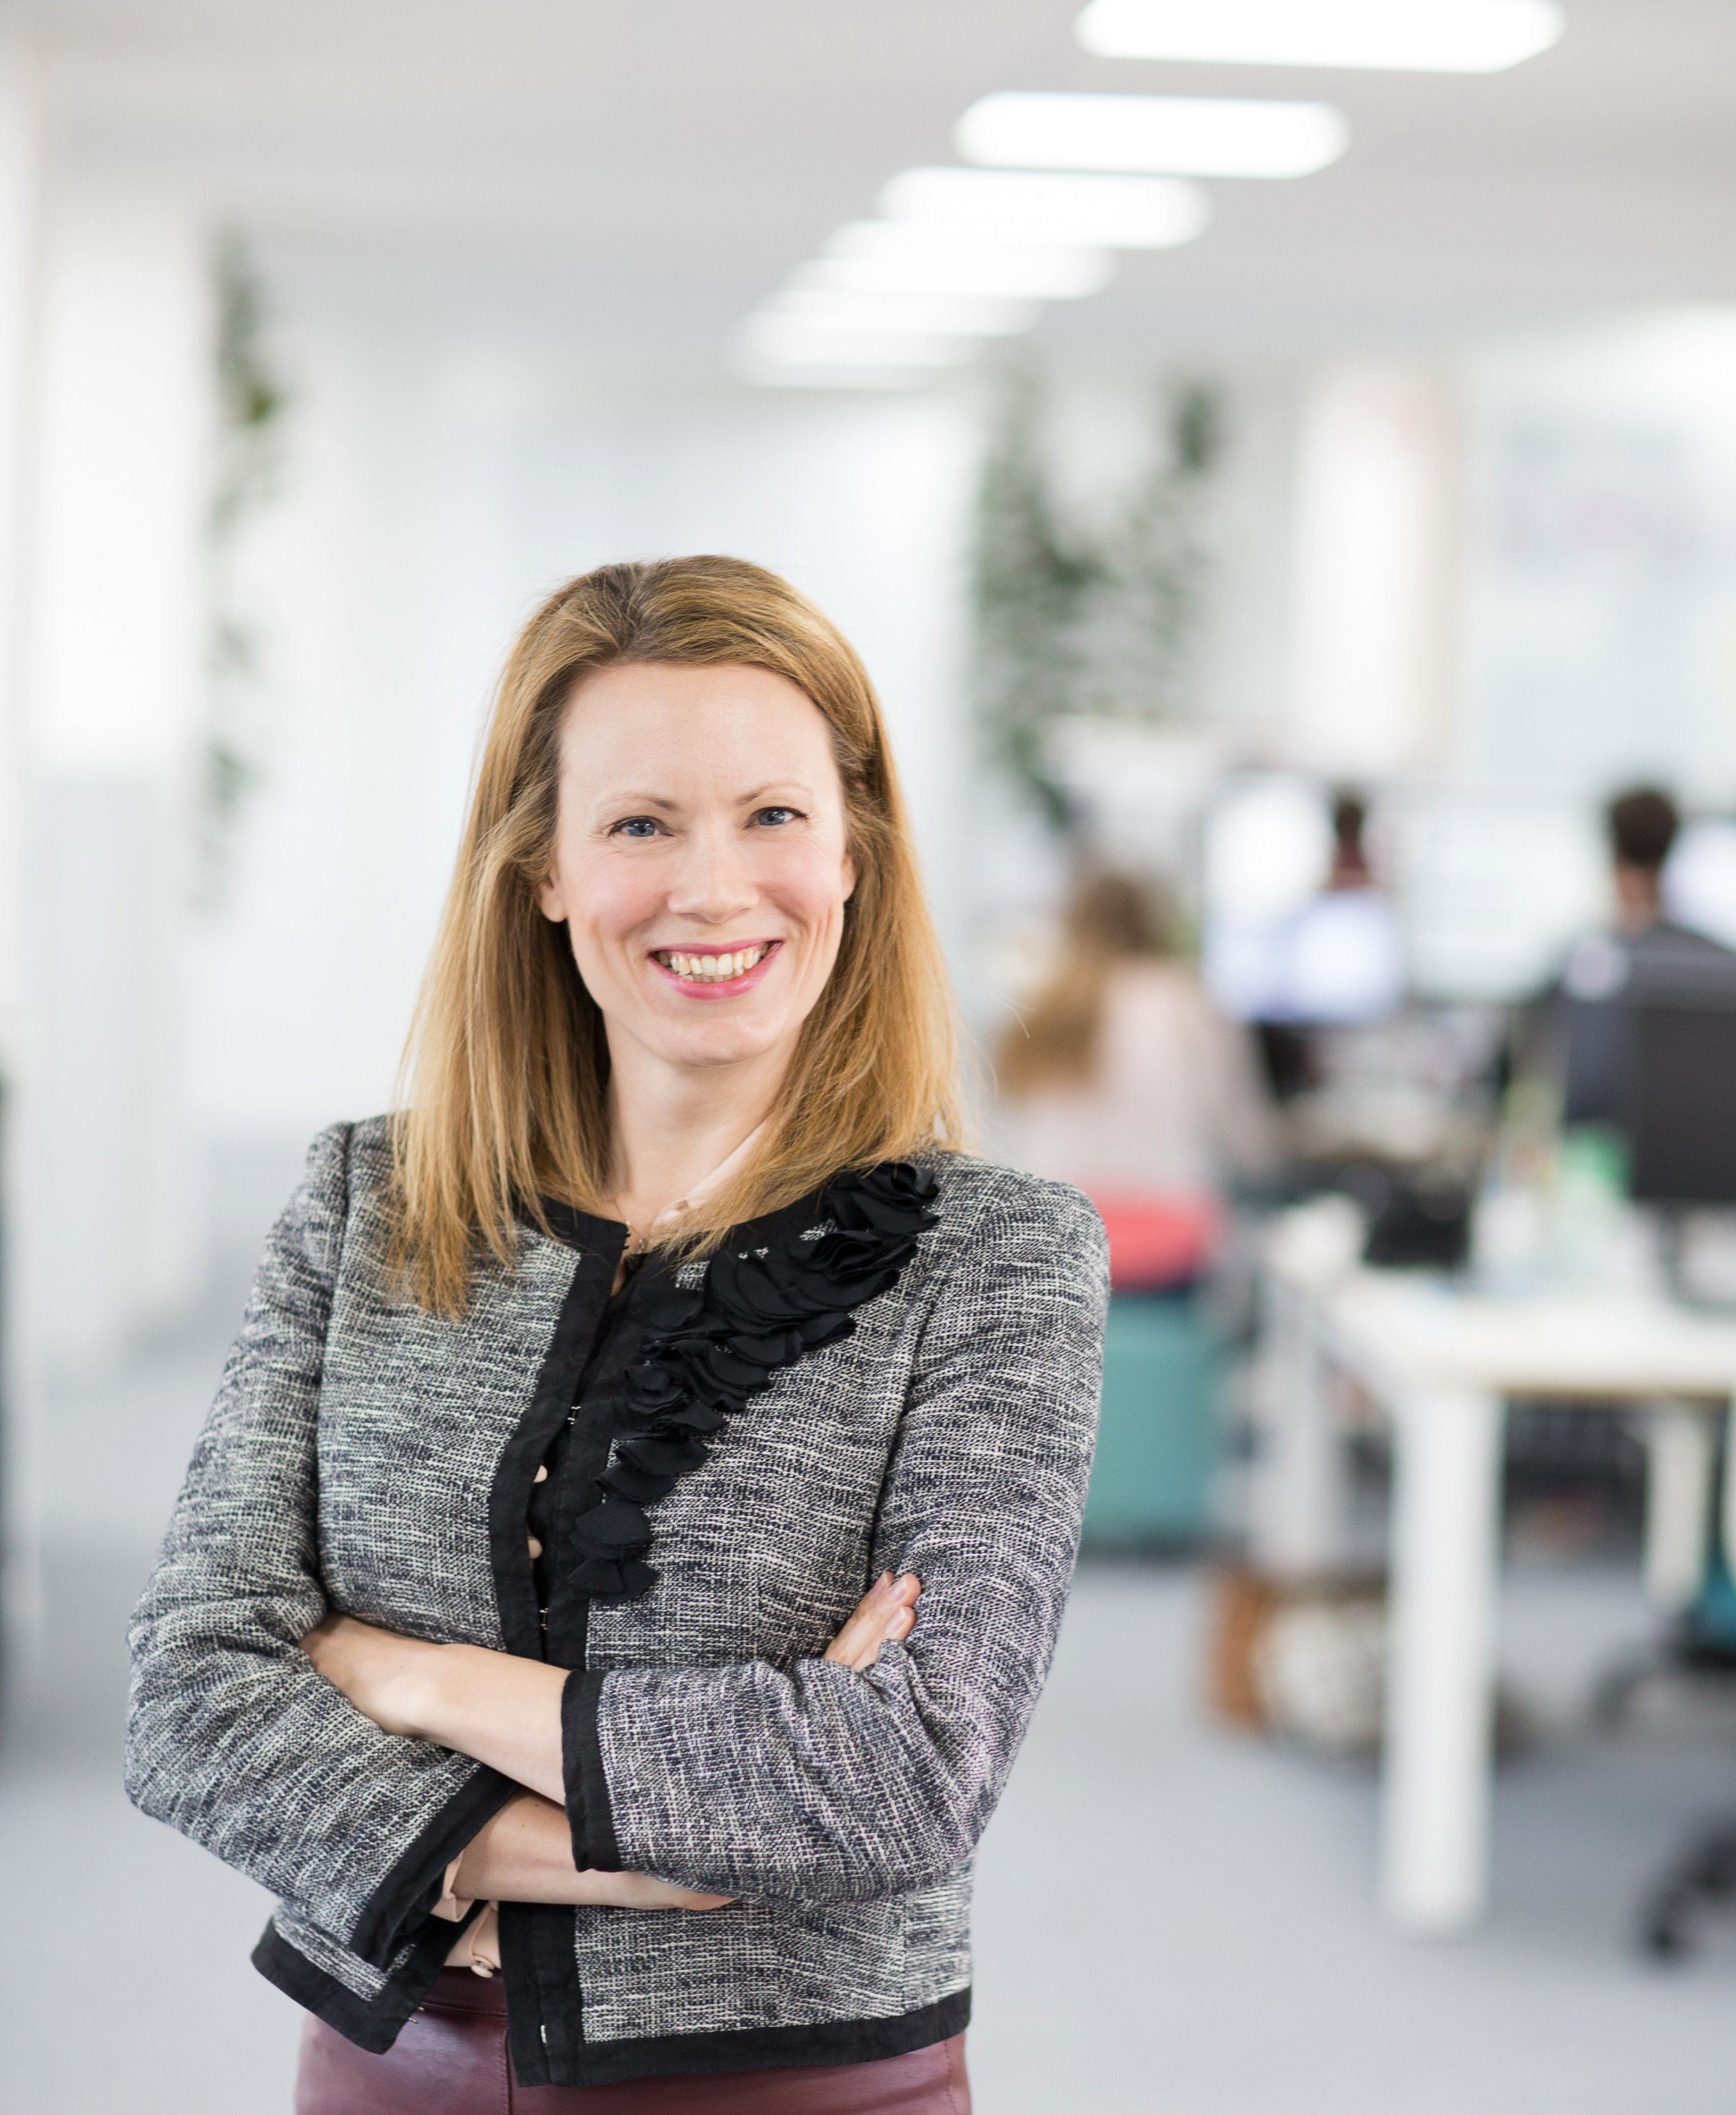 Shelley Snelson, Flexible working advocate and female founder.